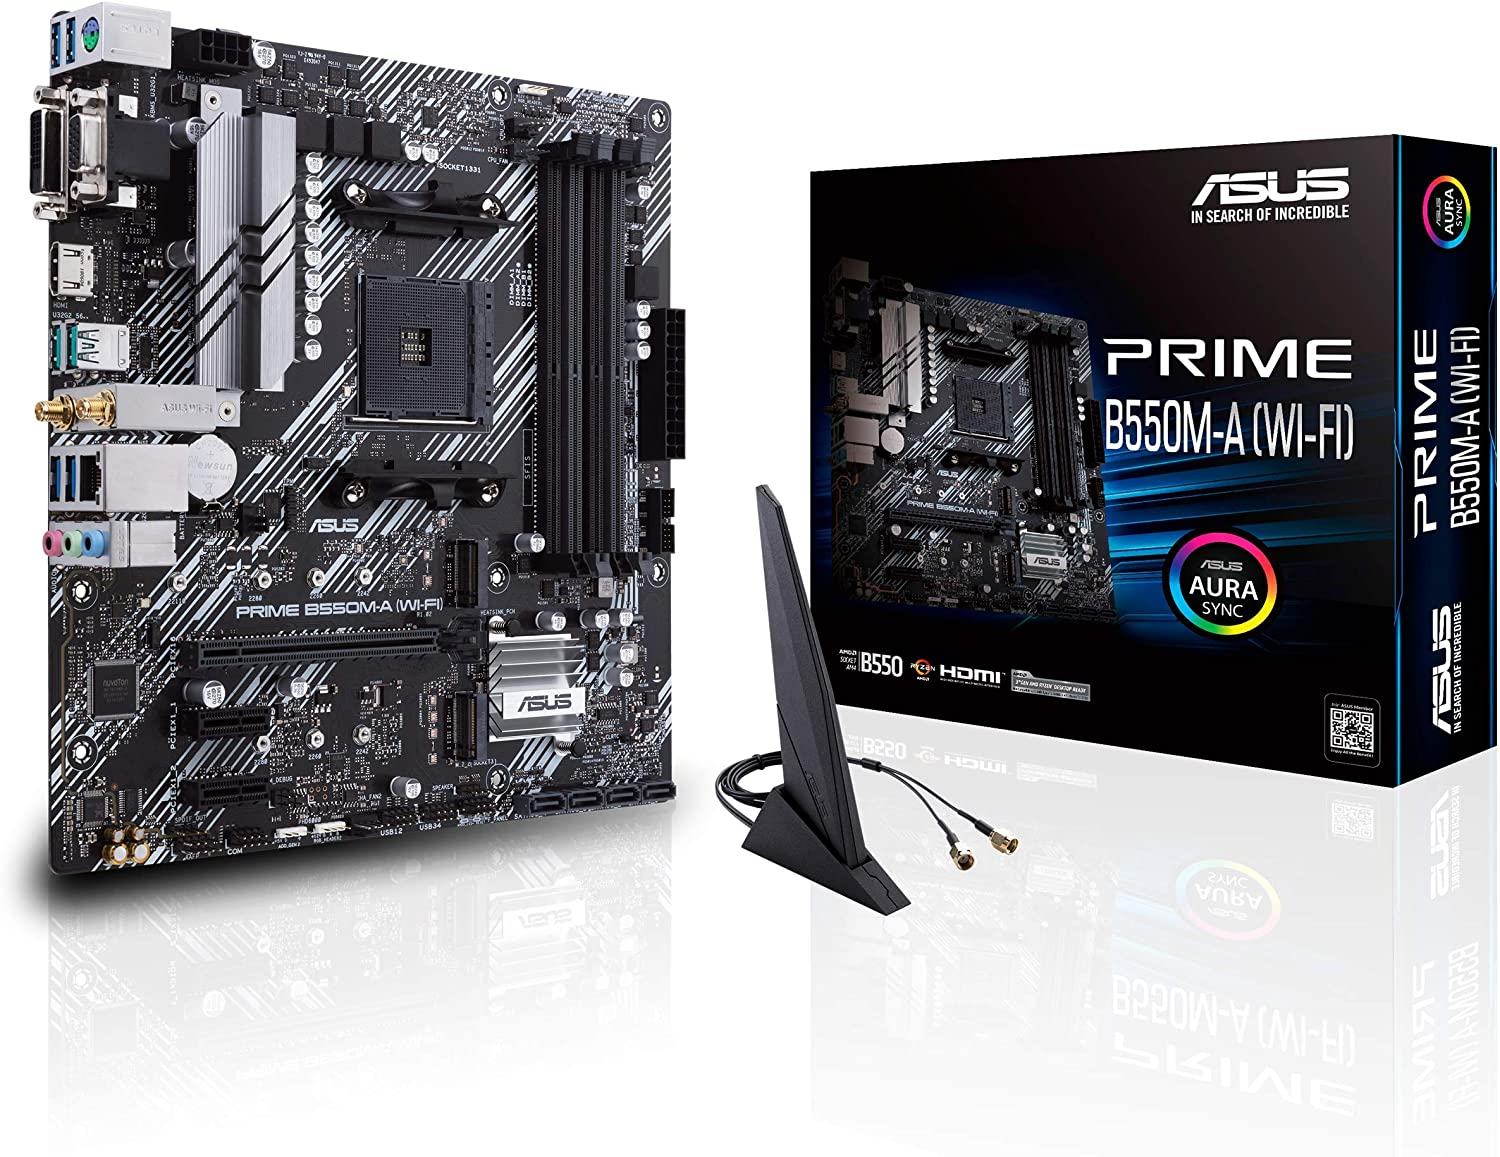 ASUS Prime B550M-A WiFi AMD AM4 (3rd Gen Ryzen Micro ATX Motherboard (PCIe 4.0, WiFi 6, ECC Memory, 1Gb LAN, HDMI 2.1/D-Sub, 4K@60HZ, Addressable Gen 2 RGB Header and Aura Sync)